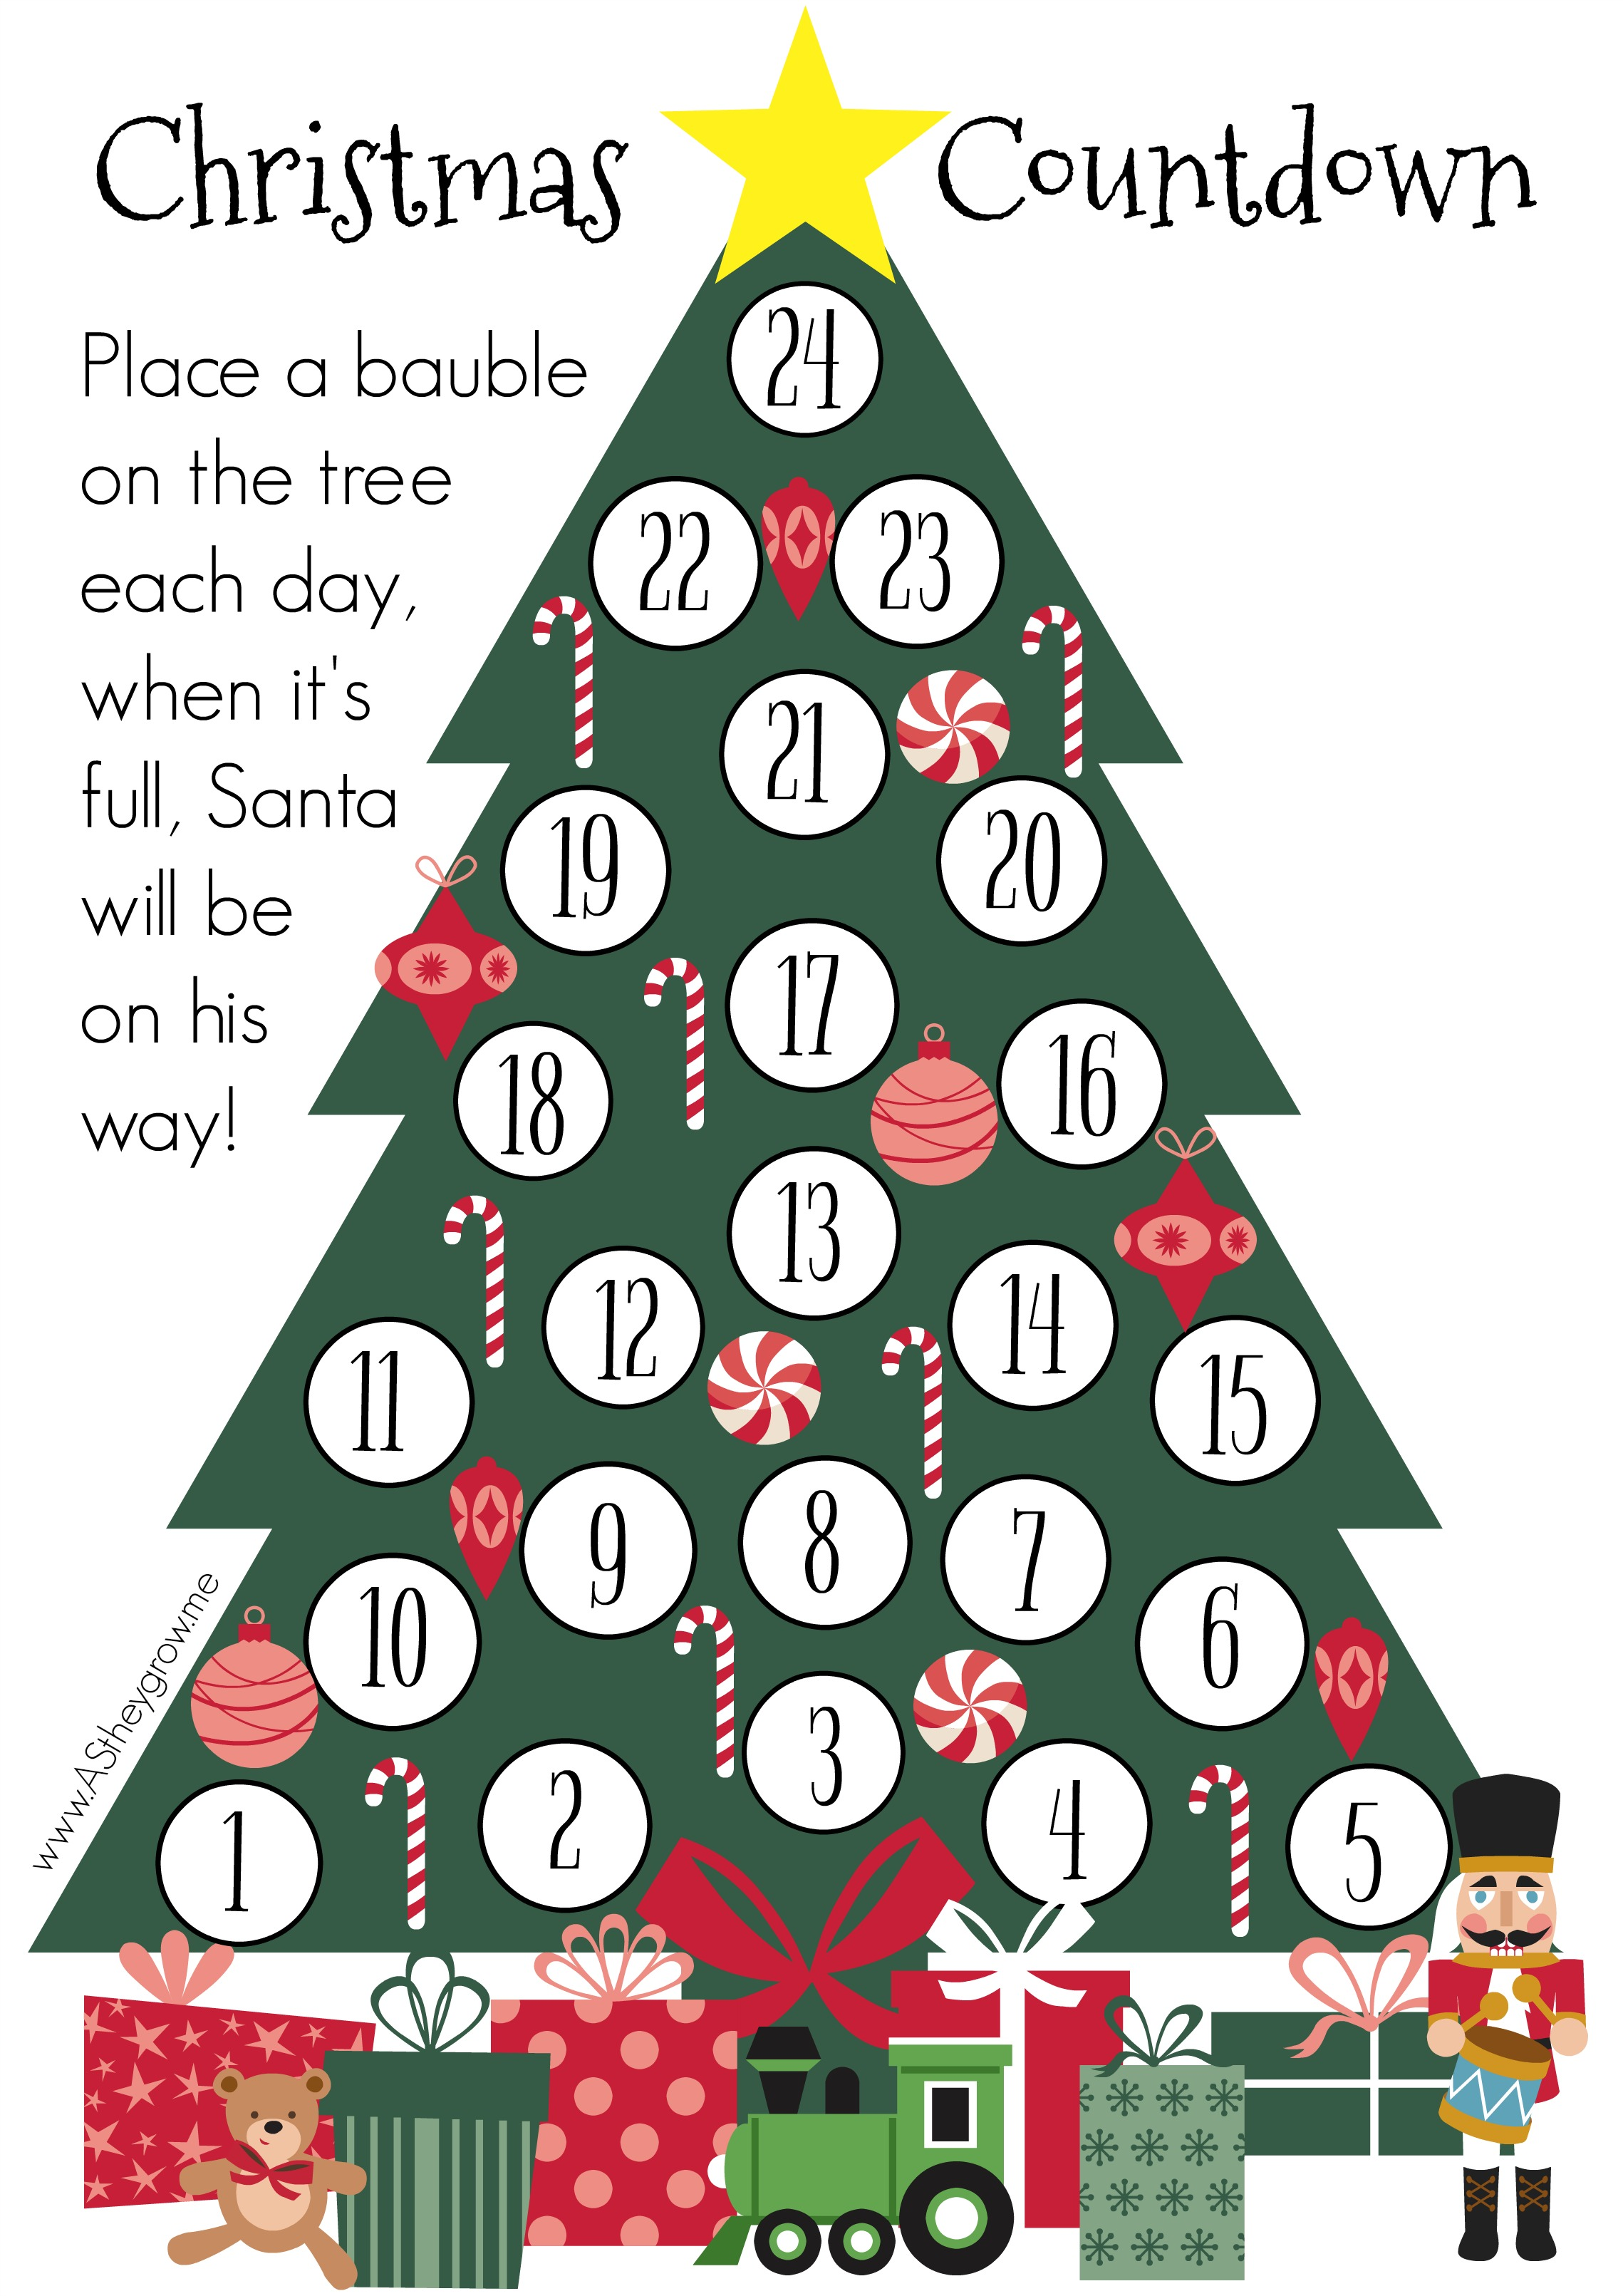 Christmas Count Down.Crafty Christmas Countdown Free Printable As They Grow